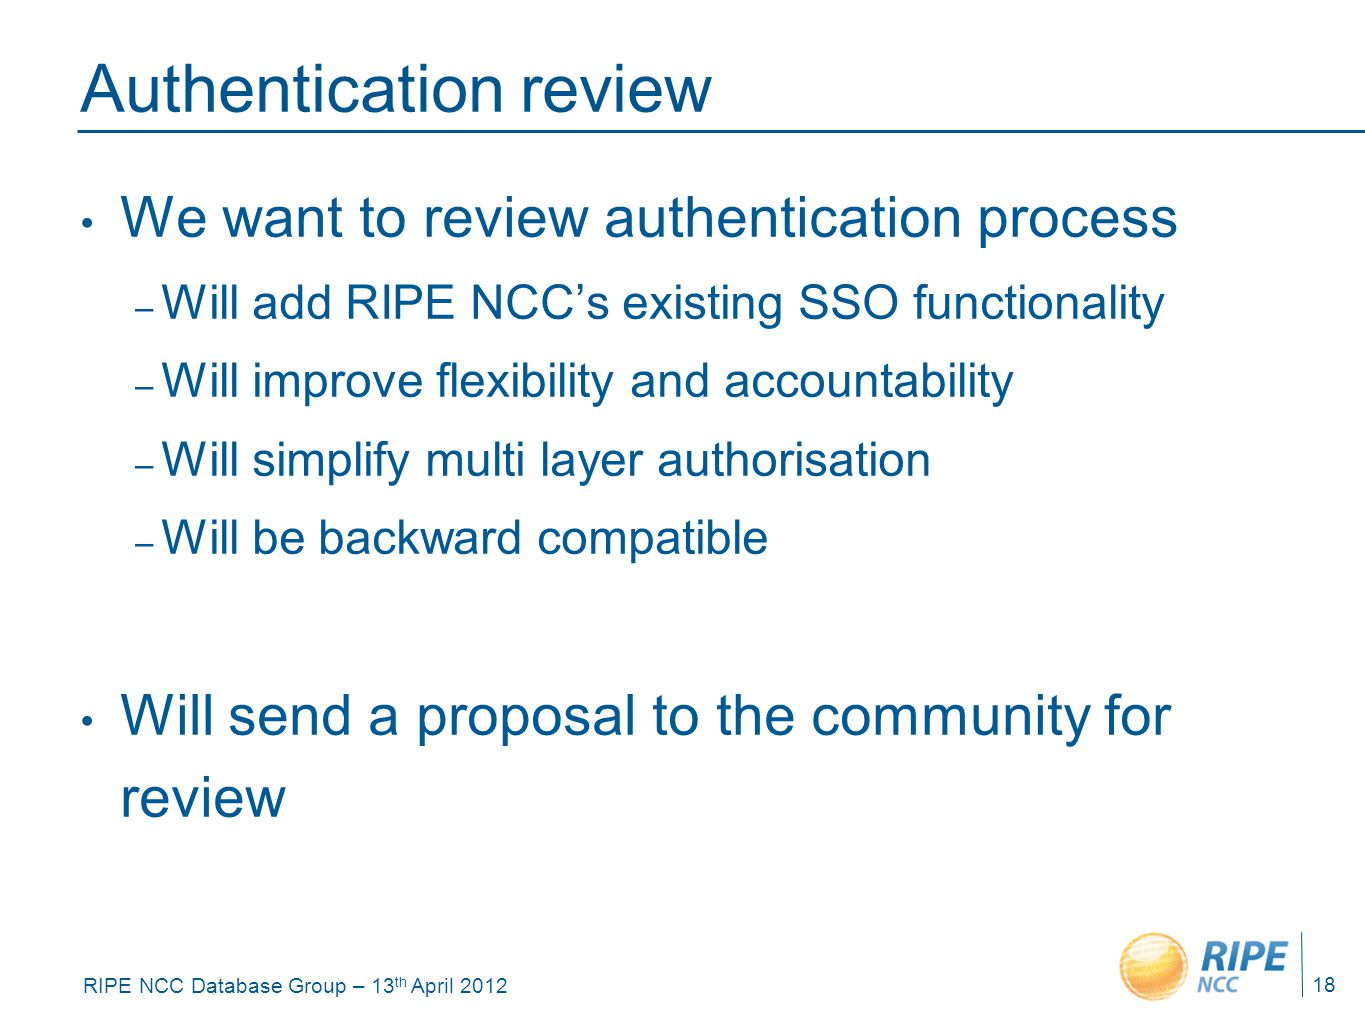 RIPE NCC Database Group – 13 th April 2012 Authentication review We want to review authentication process – Will add RIPE NCC's existing SSO functionality – Will improve flexibility and accountability – Will simplify multi layer authorisation – Will be backward compatible Will send a proposal to the community for review 18